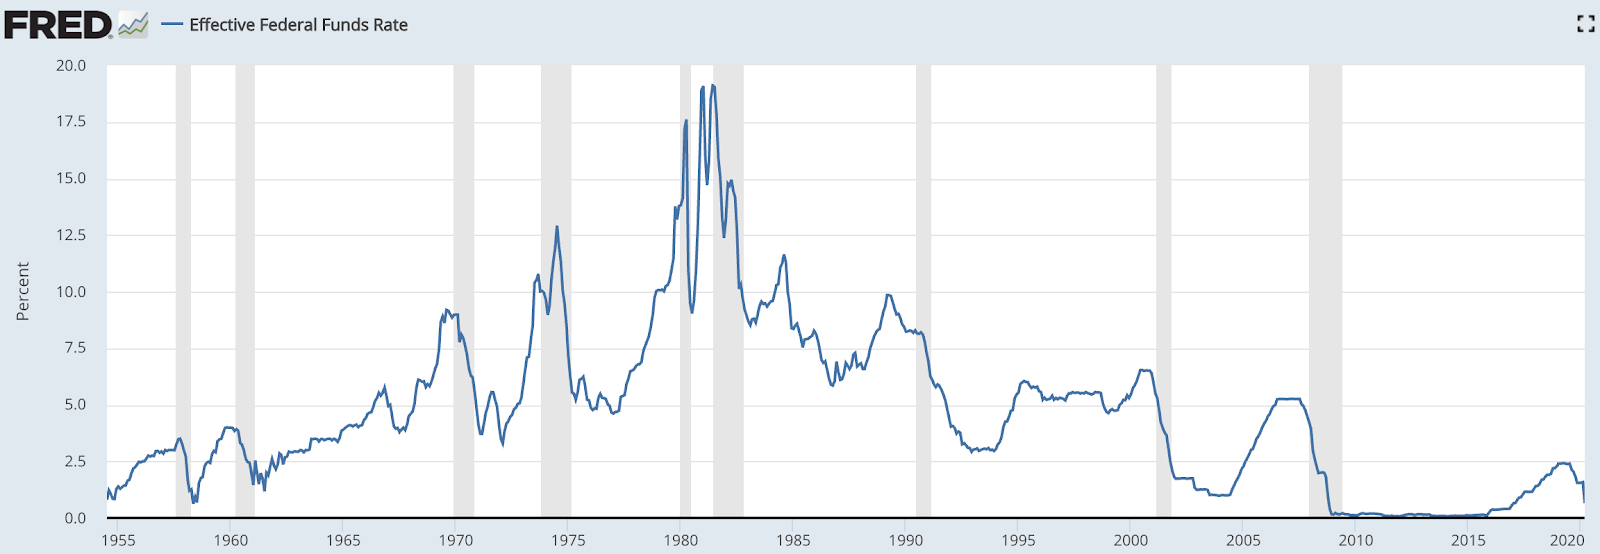 r/wallstreetbets - DDDD - The 2010-2020 Liquidity-Fueled Asset Bubble